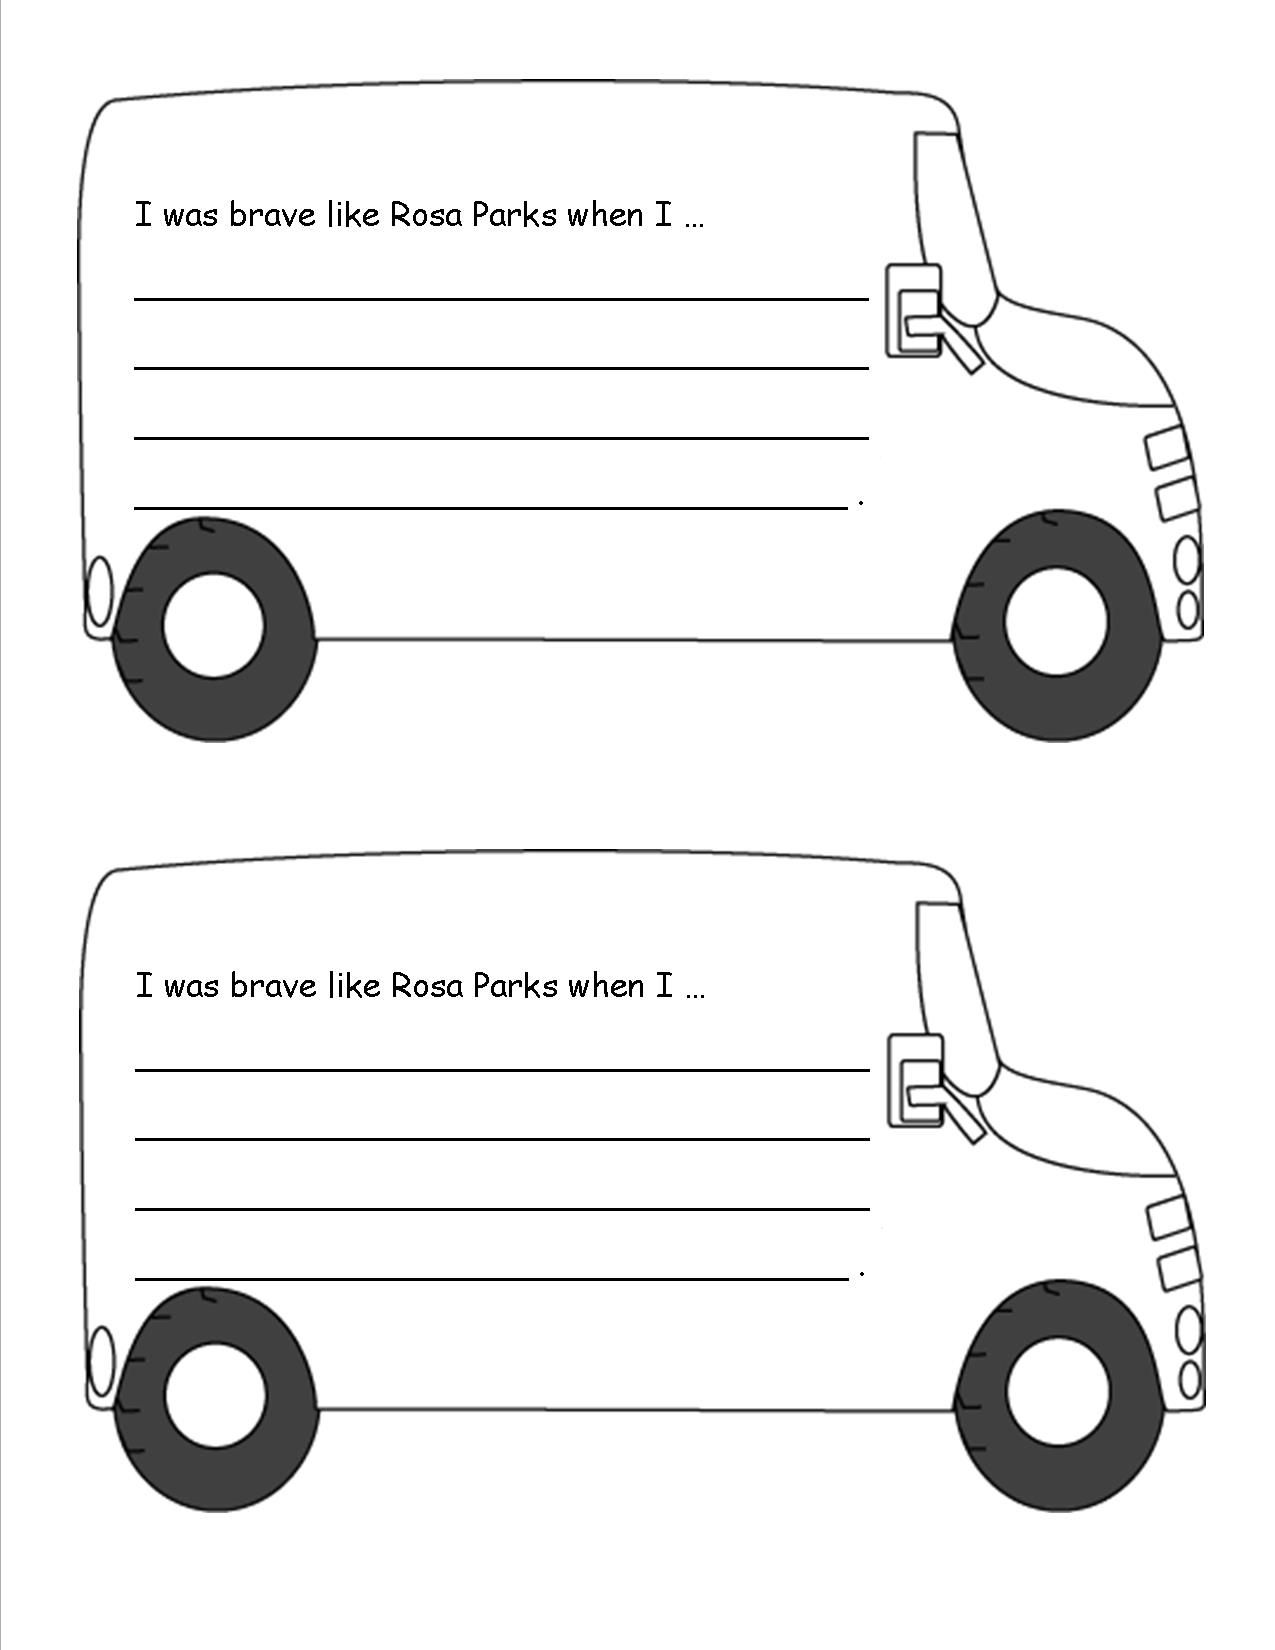 Rosa Parks Worksheet This Activity Is Great For Students Learning About Rosa Parks During Black